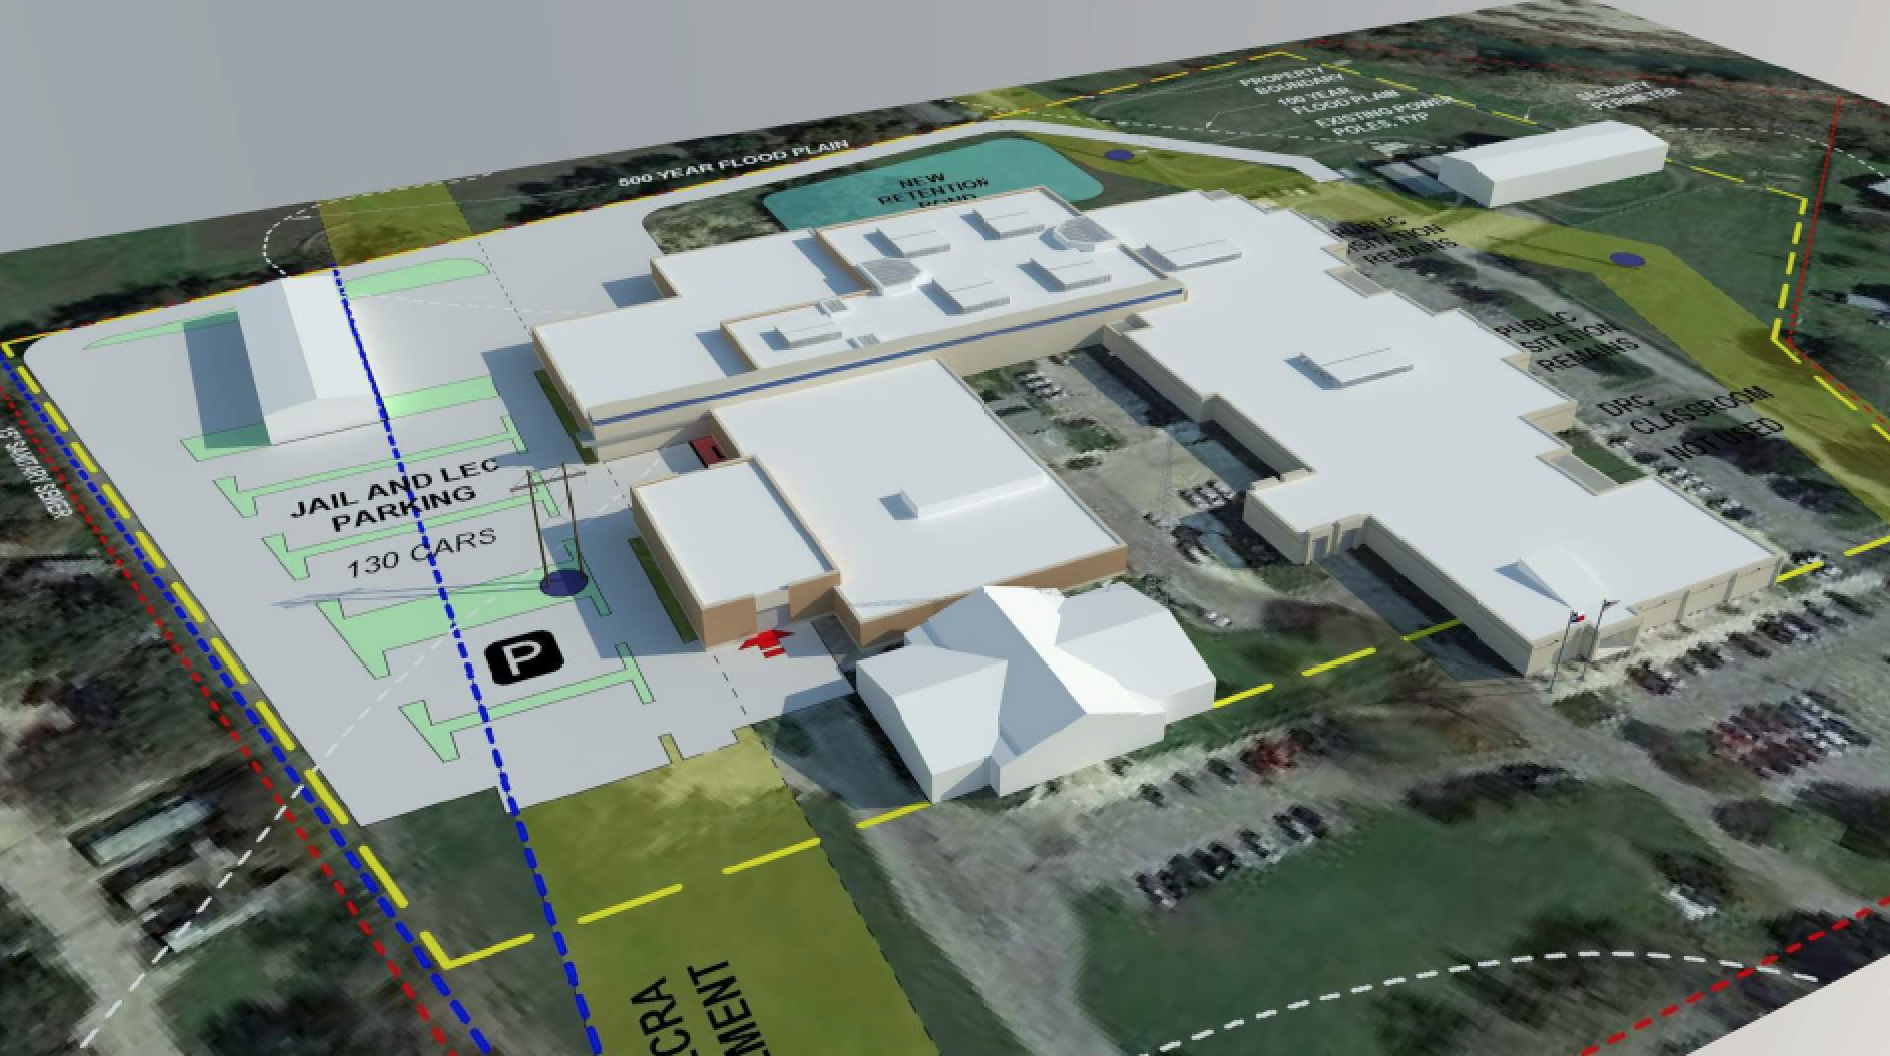 Concept image showing the proposed renovation to the existing Hays County Jail Facility